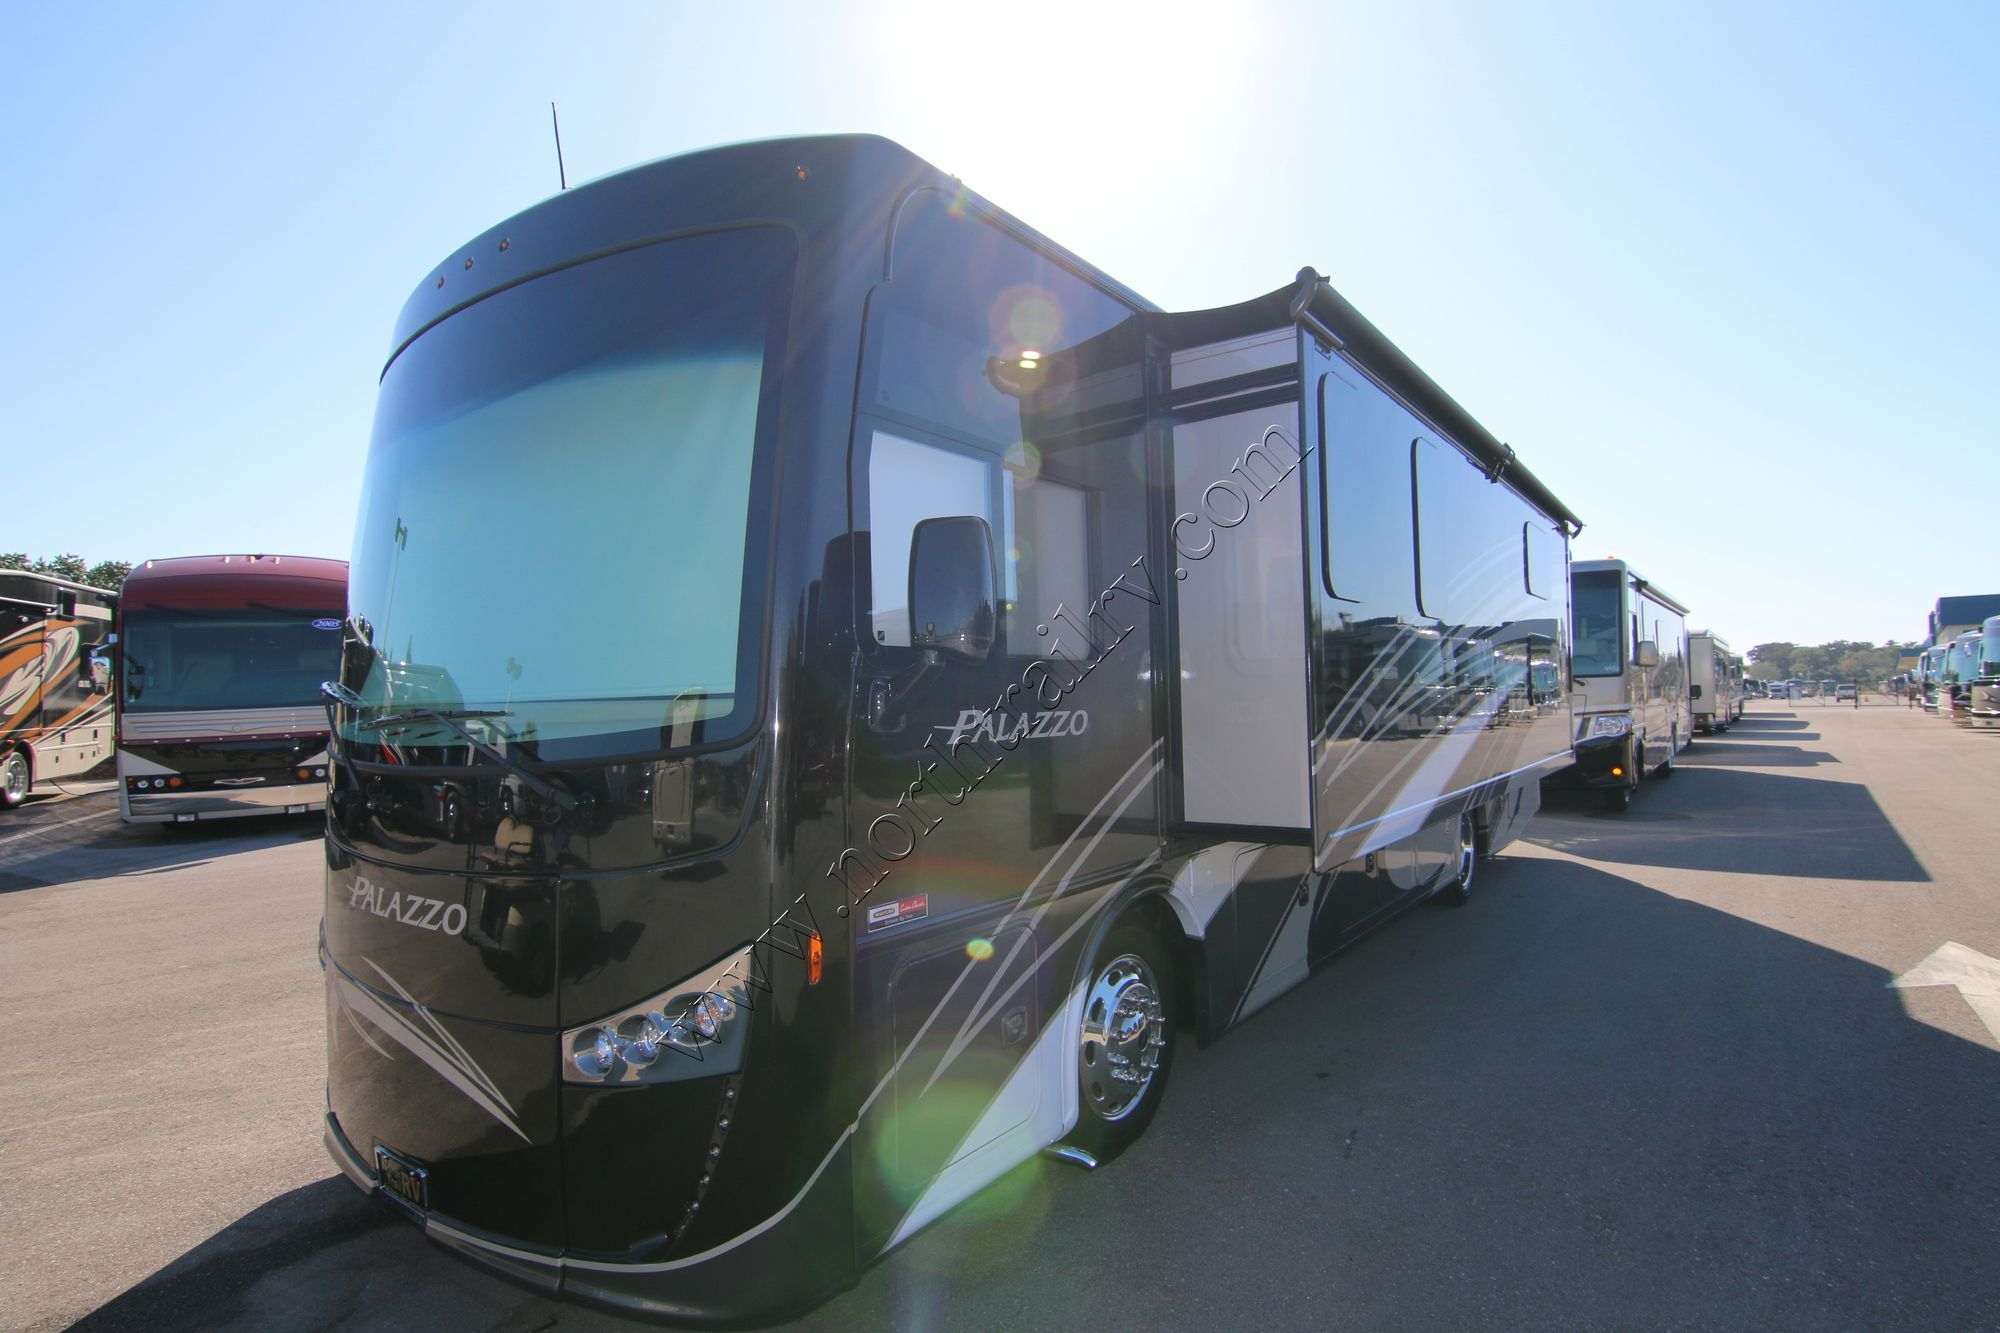 2017 Thor Palazzo 33 3 Class A Diesel Motorhome Stock 9971